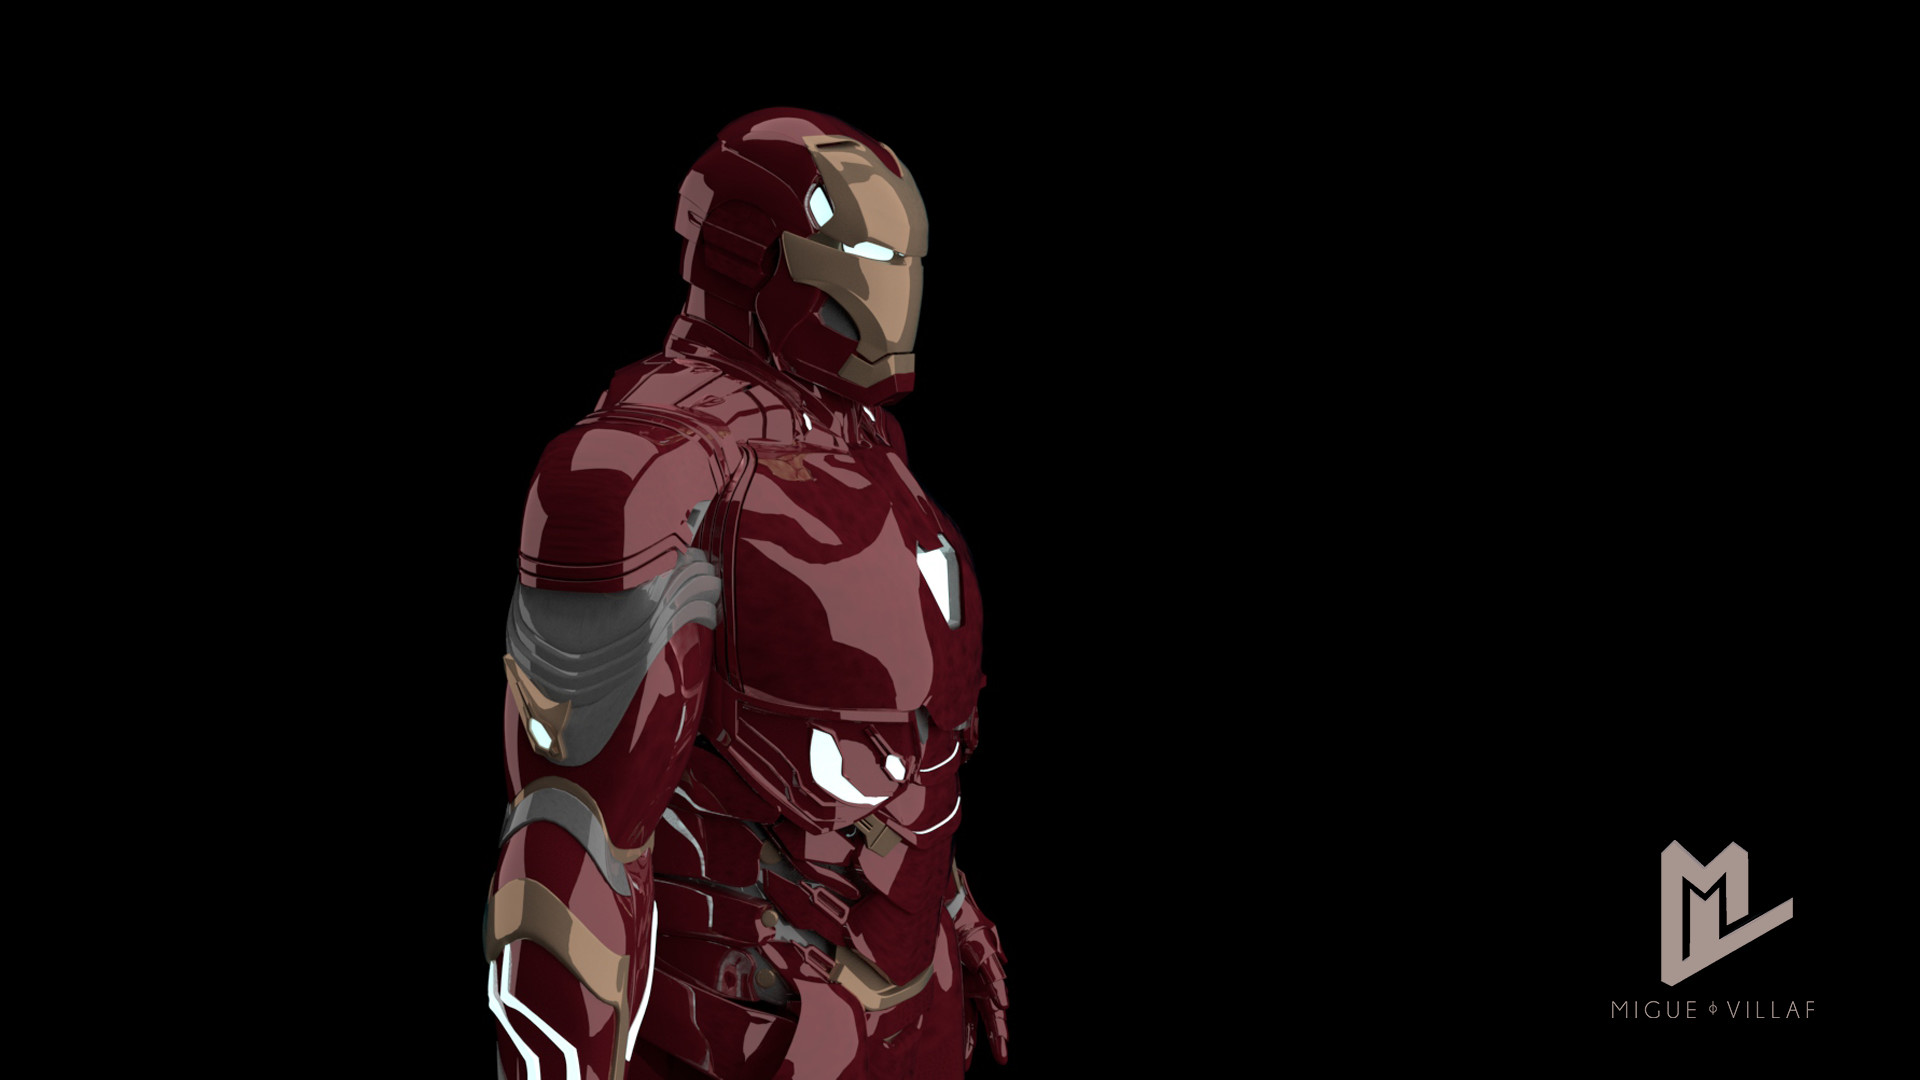 3160x1200 Ironman Infinity War Suit 3160x1200 Resolution Hd